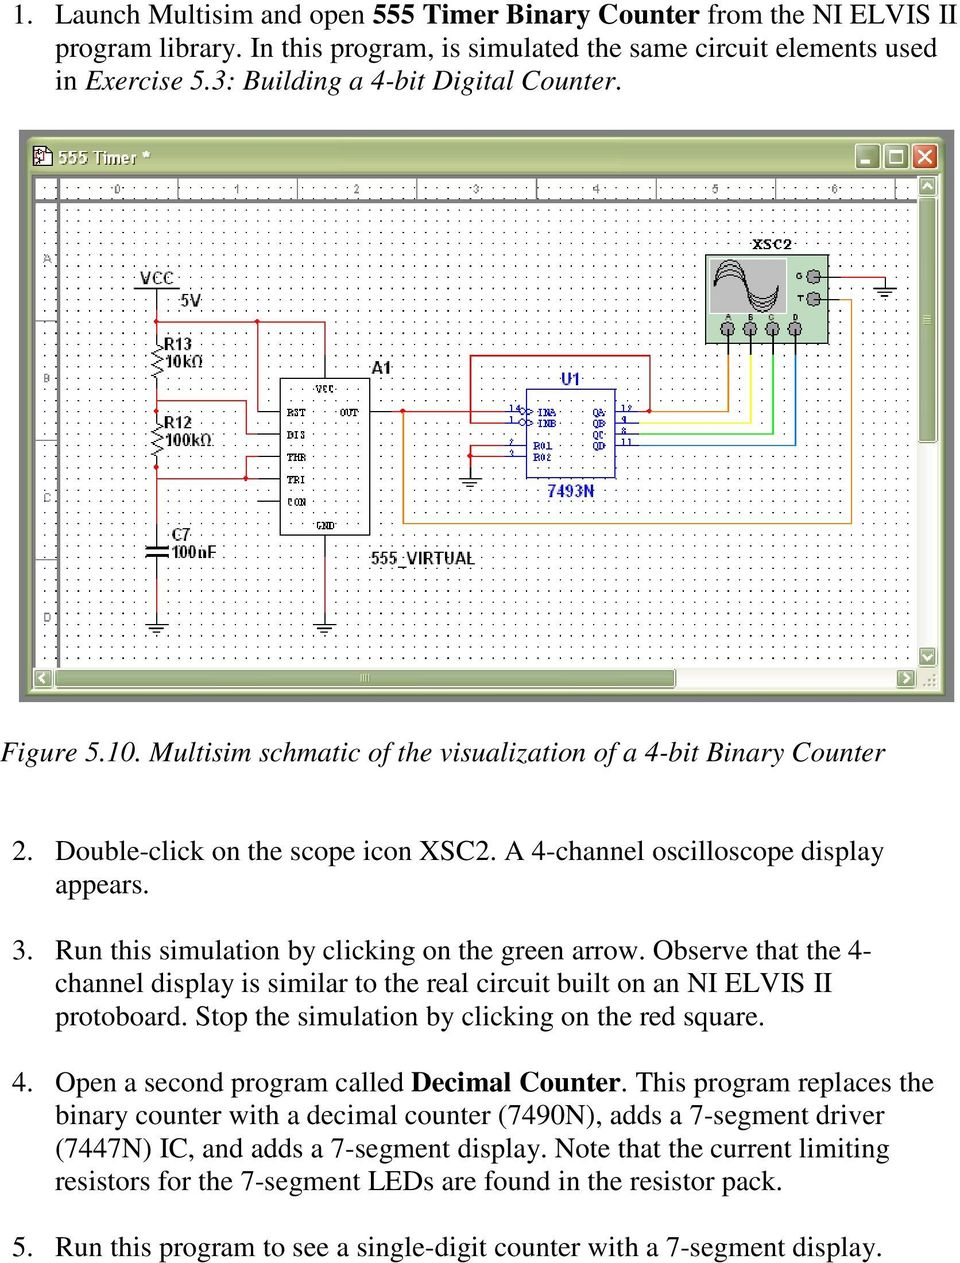 Run this simulation by clicking on the green arrow. Observe that the 4- channel display is similar to the real circuit built on an NI ELVIS II protoboard.